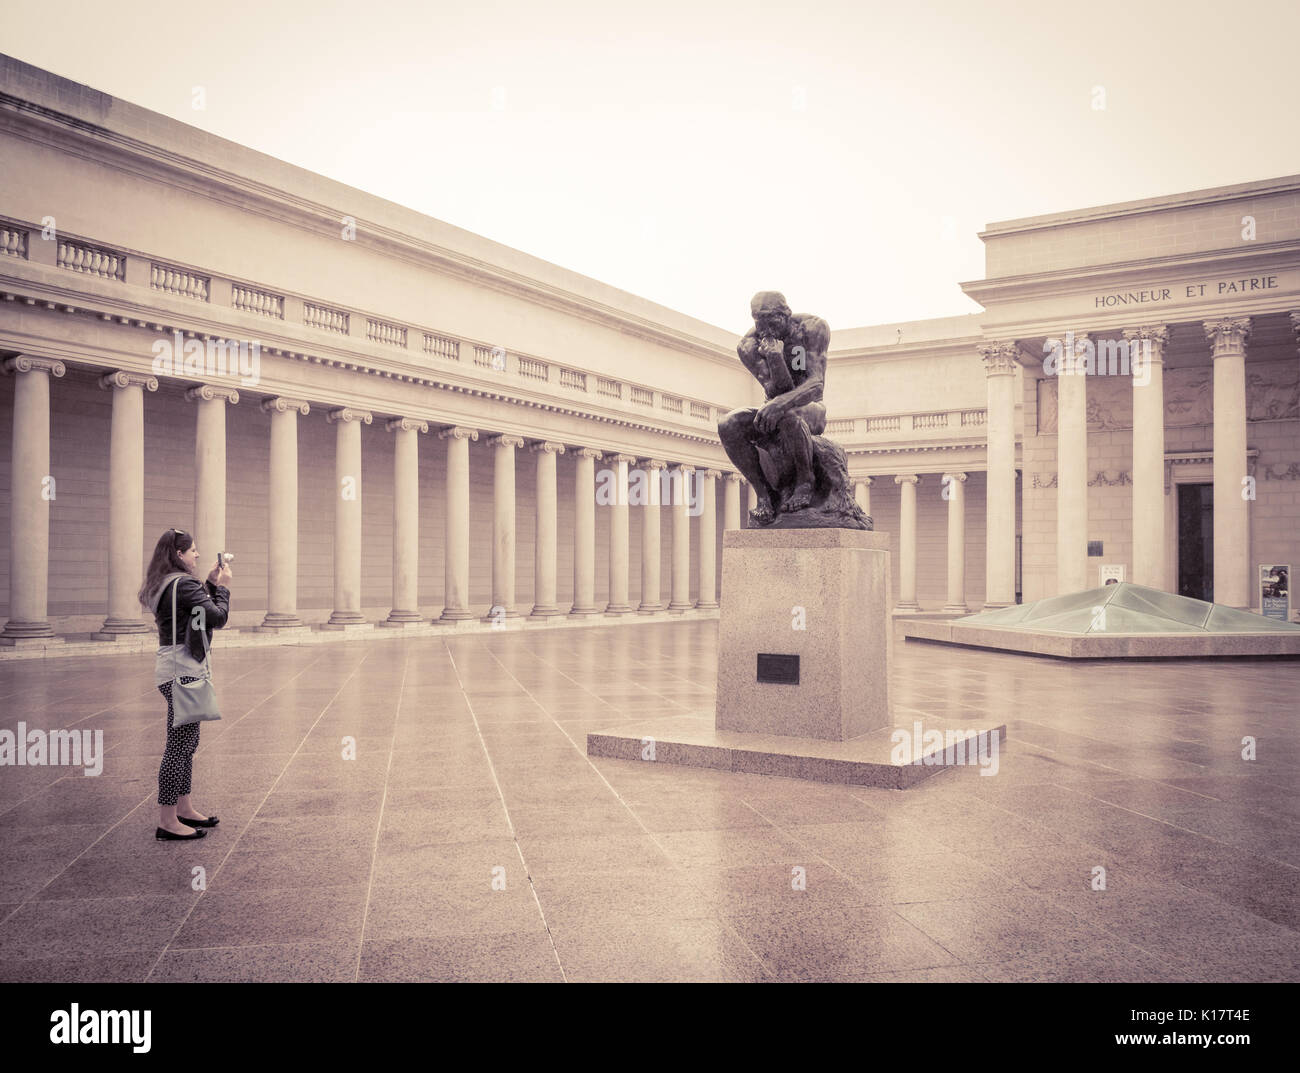 The Court of Honor, featuring a cast of the statue The Thinker, by Auguste Rodin at The Legion of Honor fine art - Stock Image